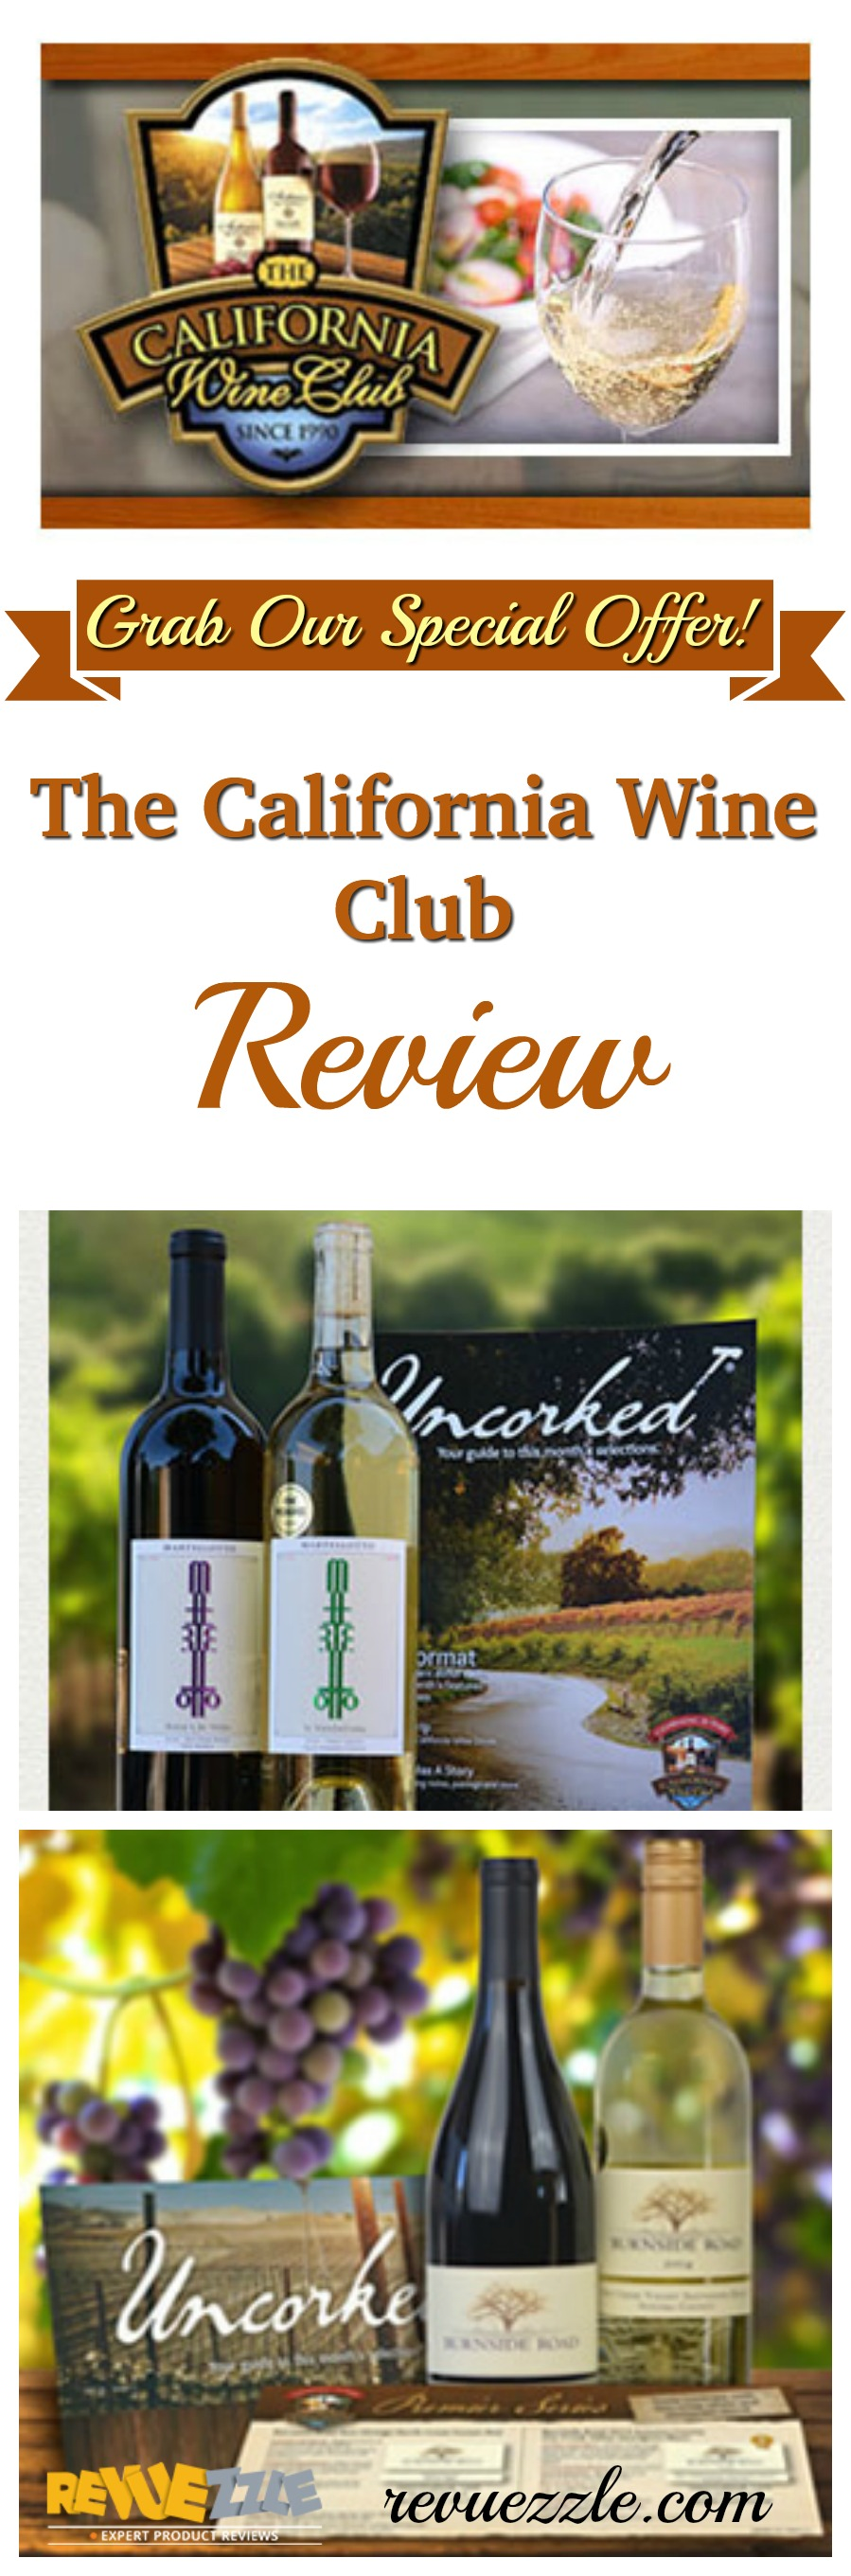 GrapeSeed Wine's Wine Club isn't labeled California, but for the foreseeable future all of it's wine comes from Napa & Sonoma, so it is one! This club is an awesome way to discover the joy of premium California wine.